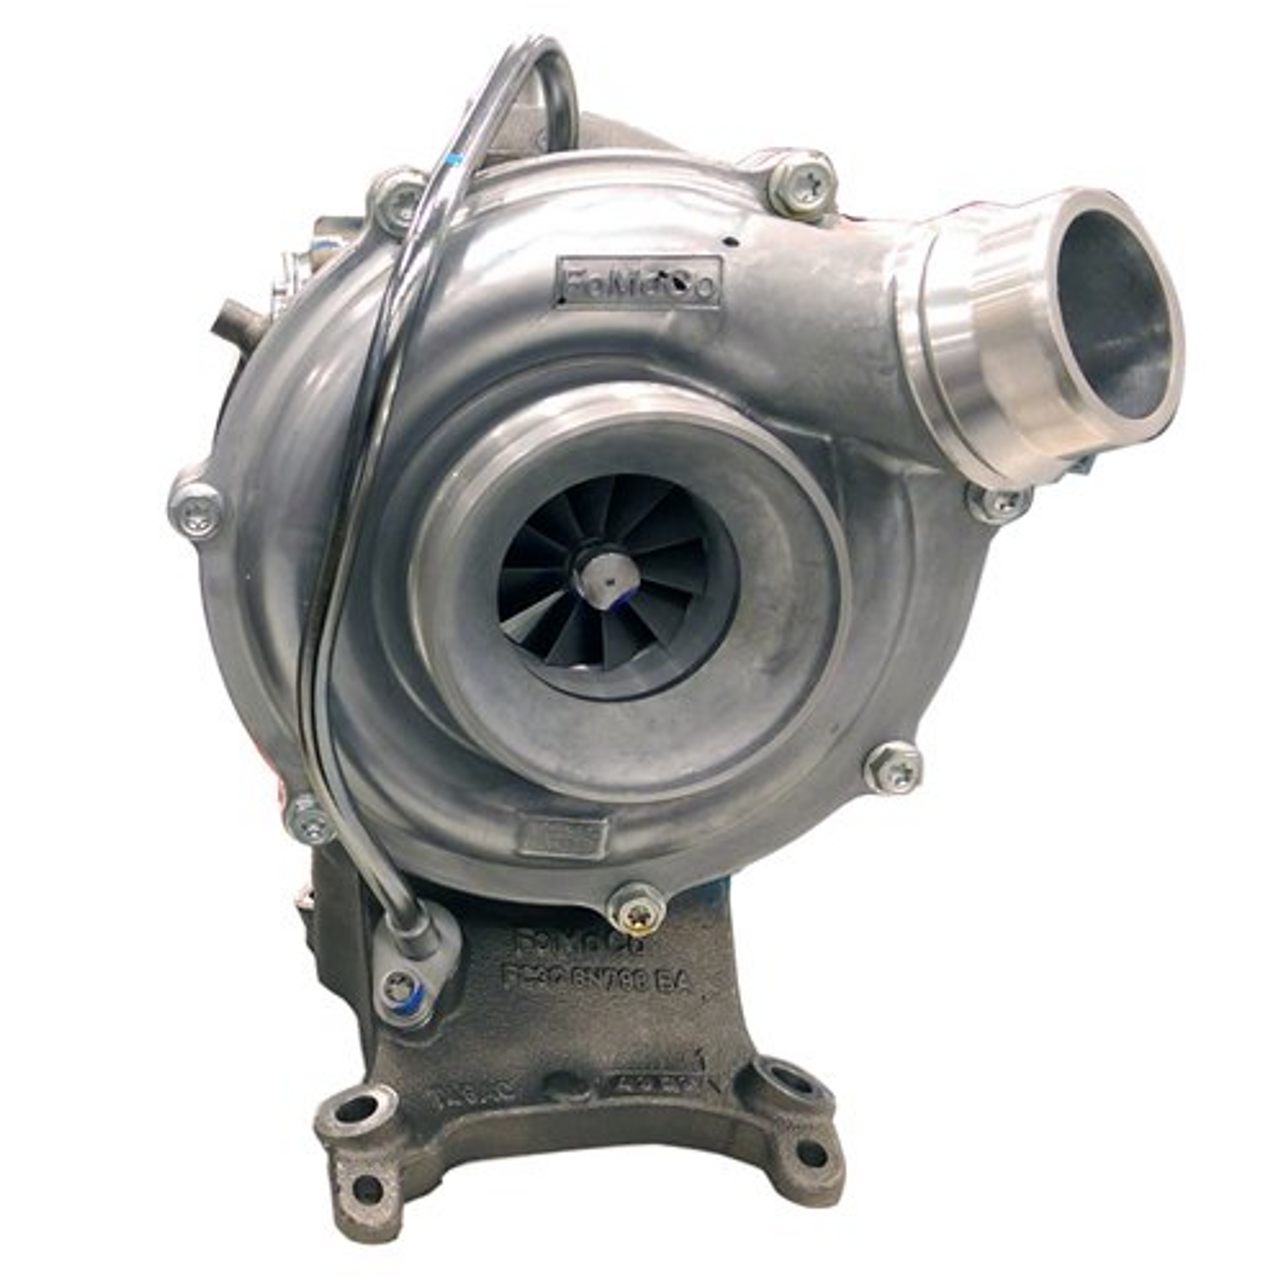 Ford Performance Replacement Turbocharger 15-16 Power Stroke Diesel 6.7L - M-TURBO-67